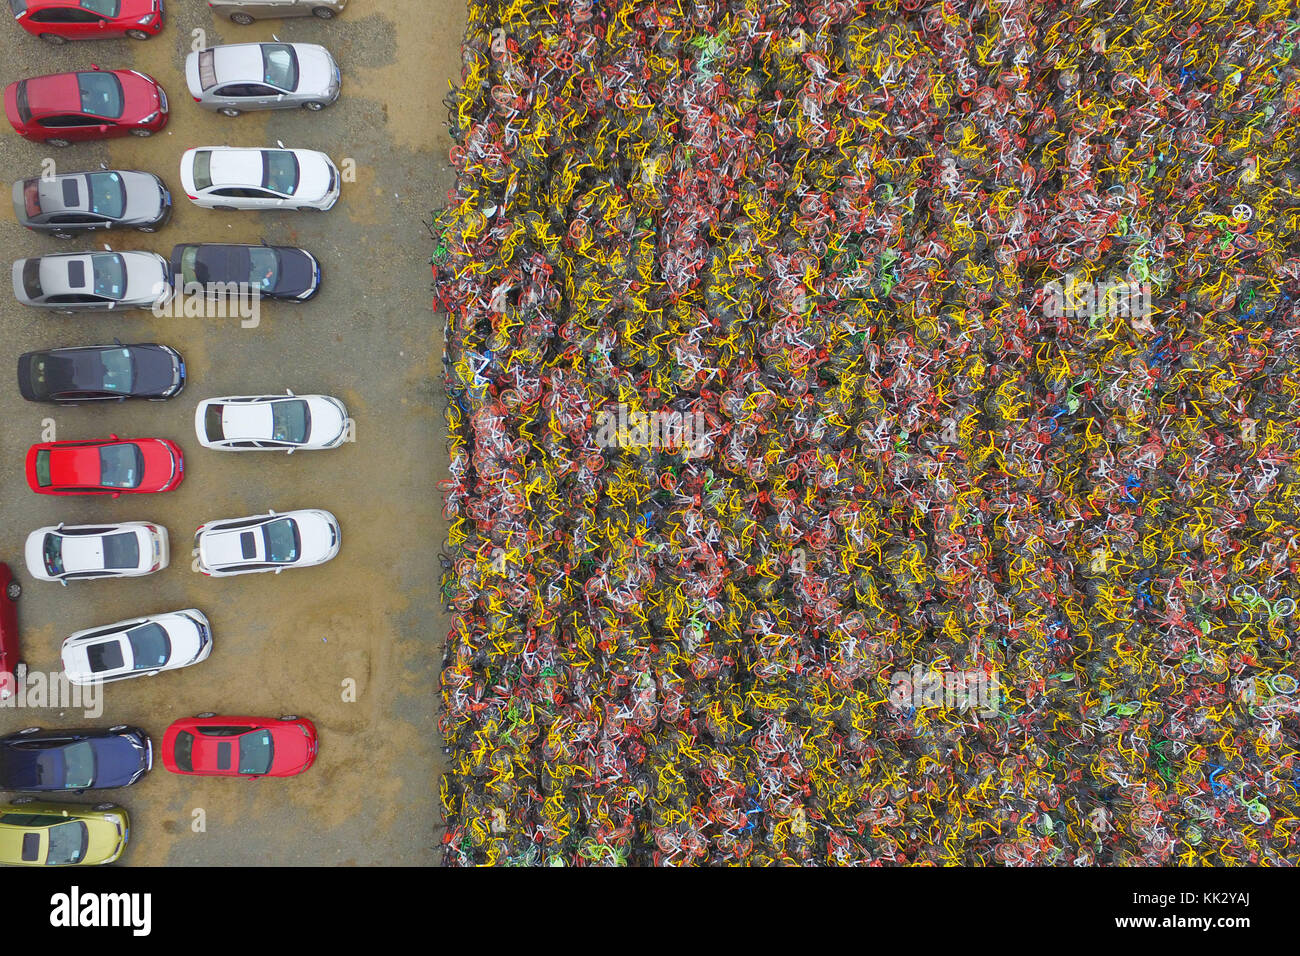 Nanjin, Nanjin, China. 28th Nov, 2017. EDITORIAL USE ONLY. CHINA OUT) .Mountain of impounded shared bikes can be - Stock Image